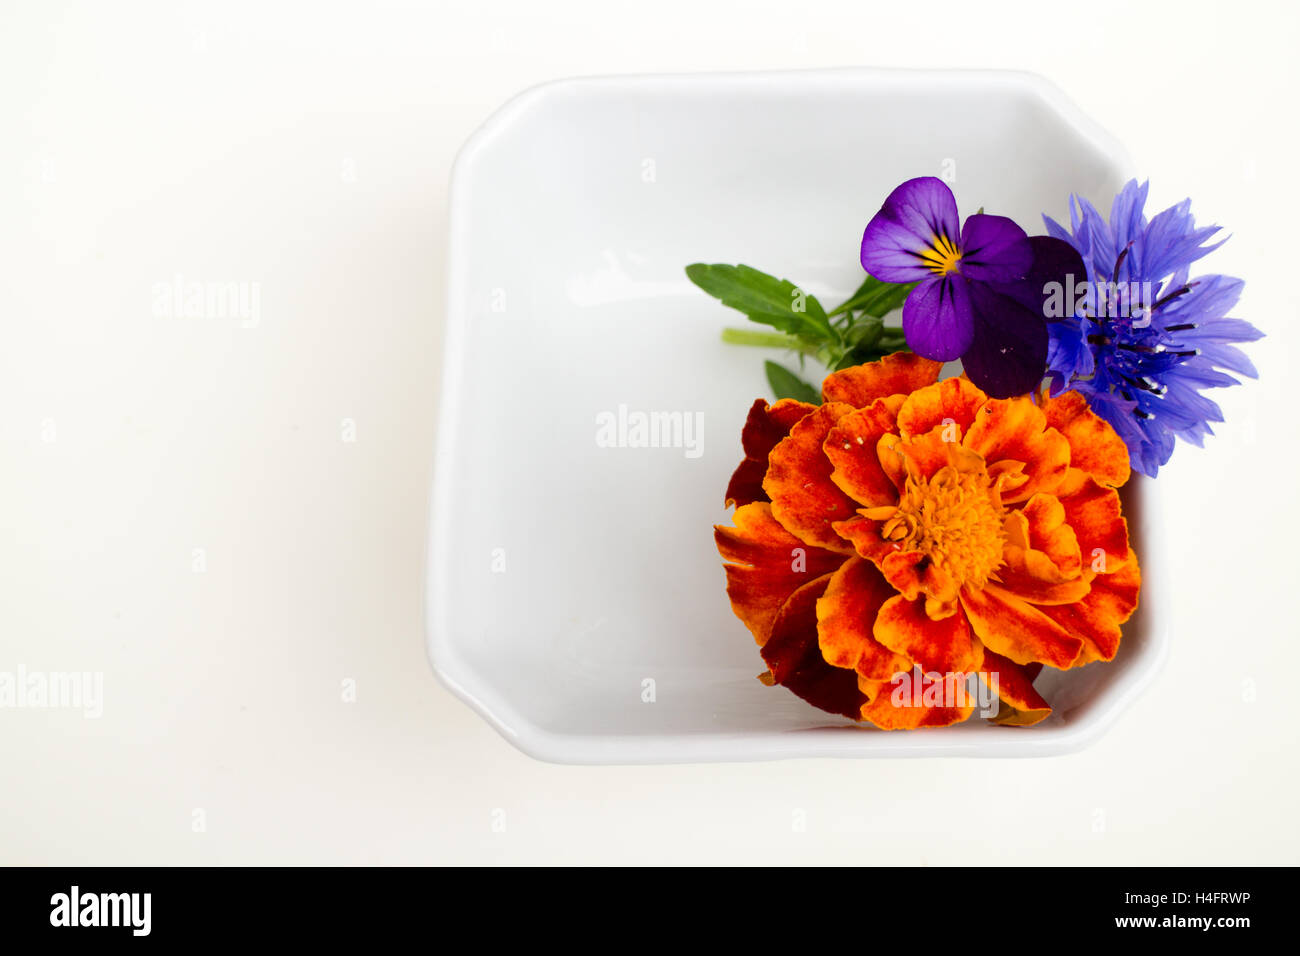 Edible Flower Arrangements Stock Photos & Edible Flower Arrangements ...